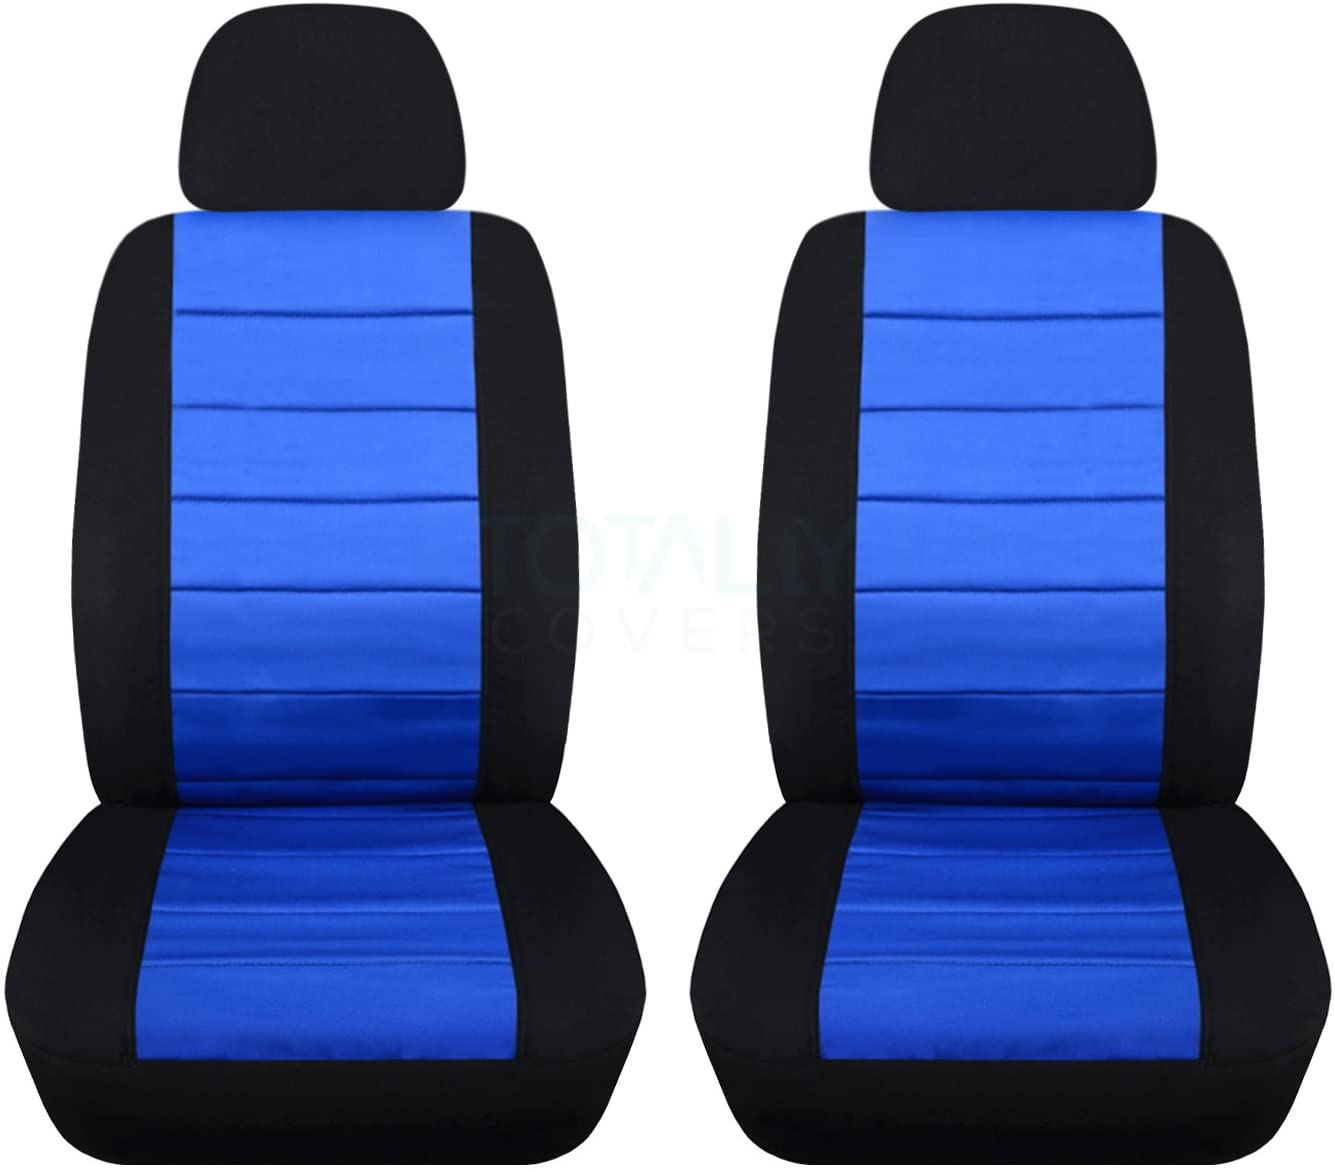 Totally Covers 2-Tone Car Seat Covers w 2 Separate Headrest Covers: Black & Blue - Universal Fit - Front - Buckets - Option for Airbag, Seat Belt, Armrest & Seat Release/Lever Compatible (22 Colors)